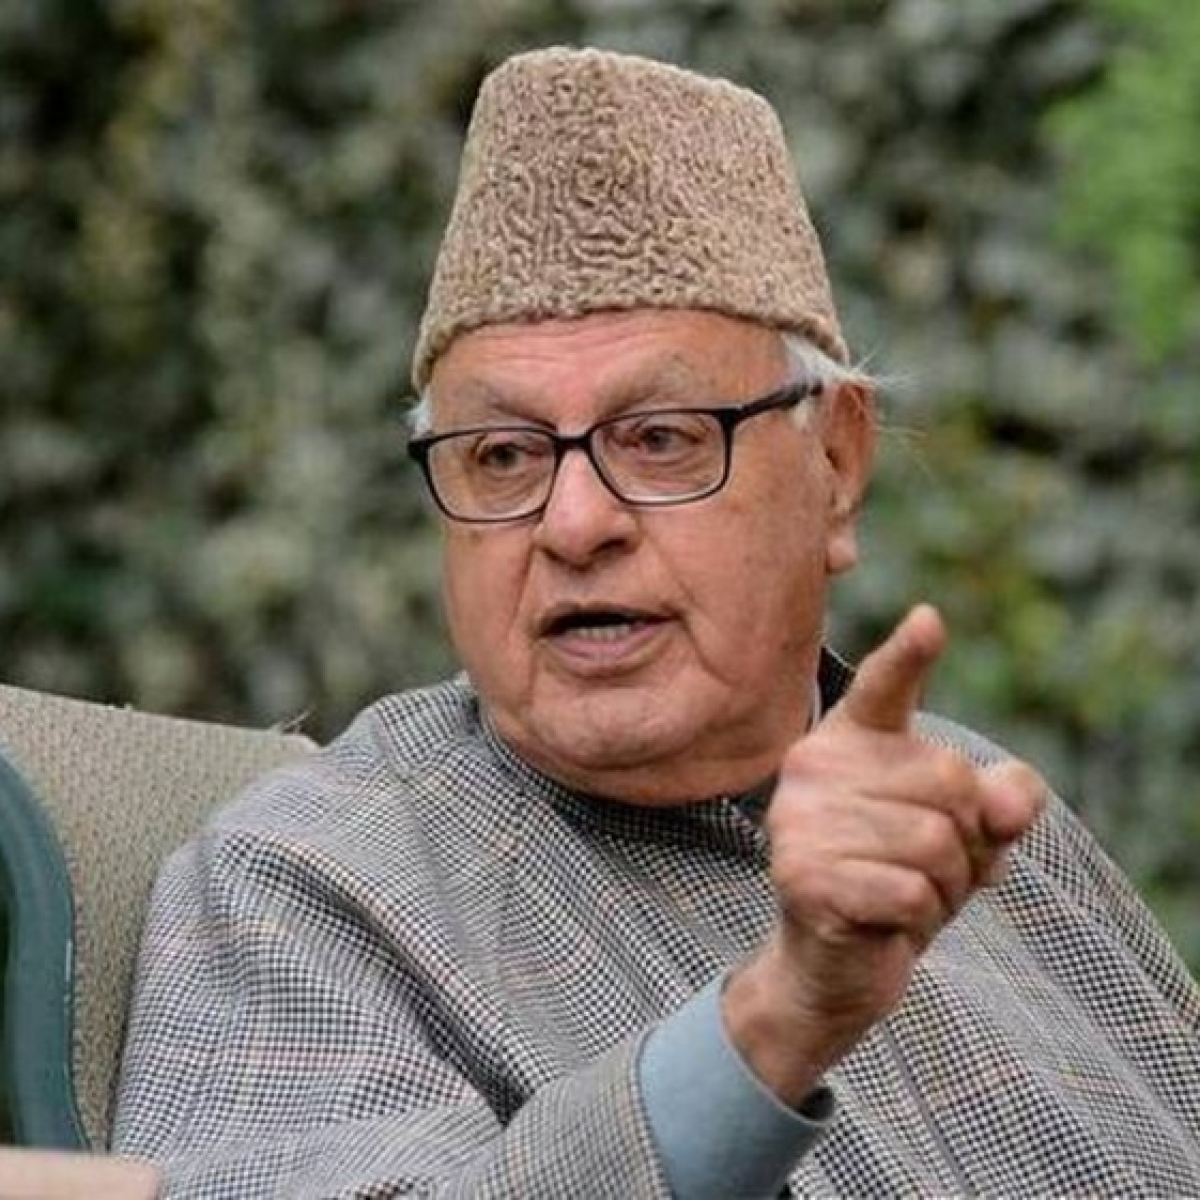 After J&K Governor's nod, NC delegation set to meet Abdullahs on Sunday